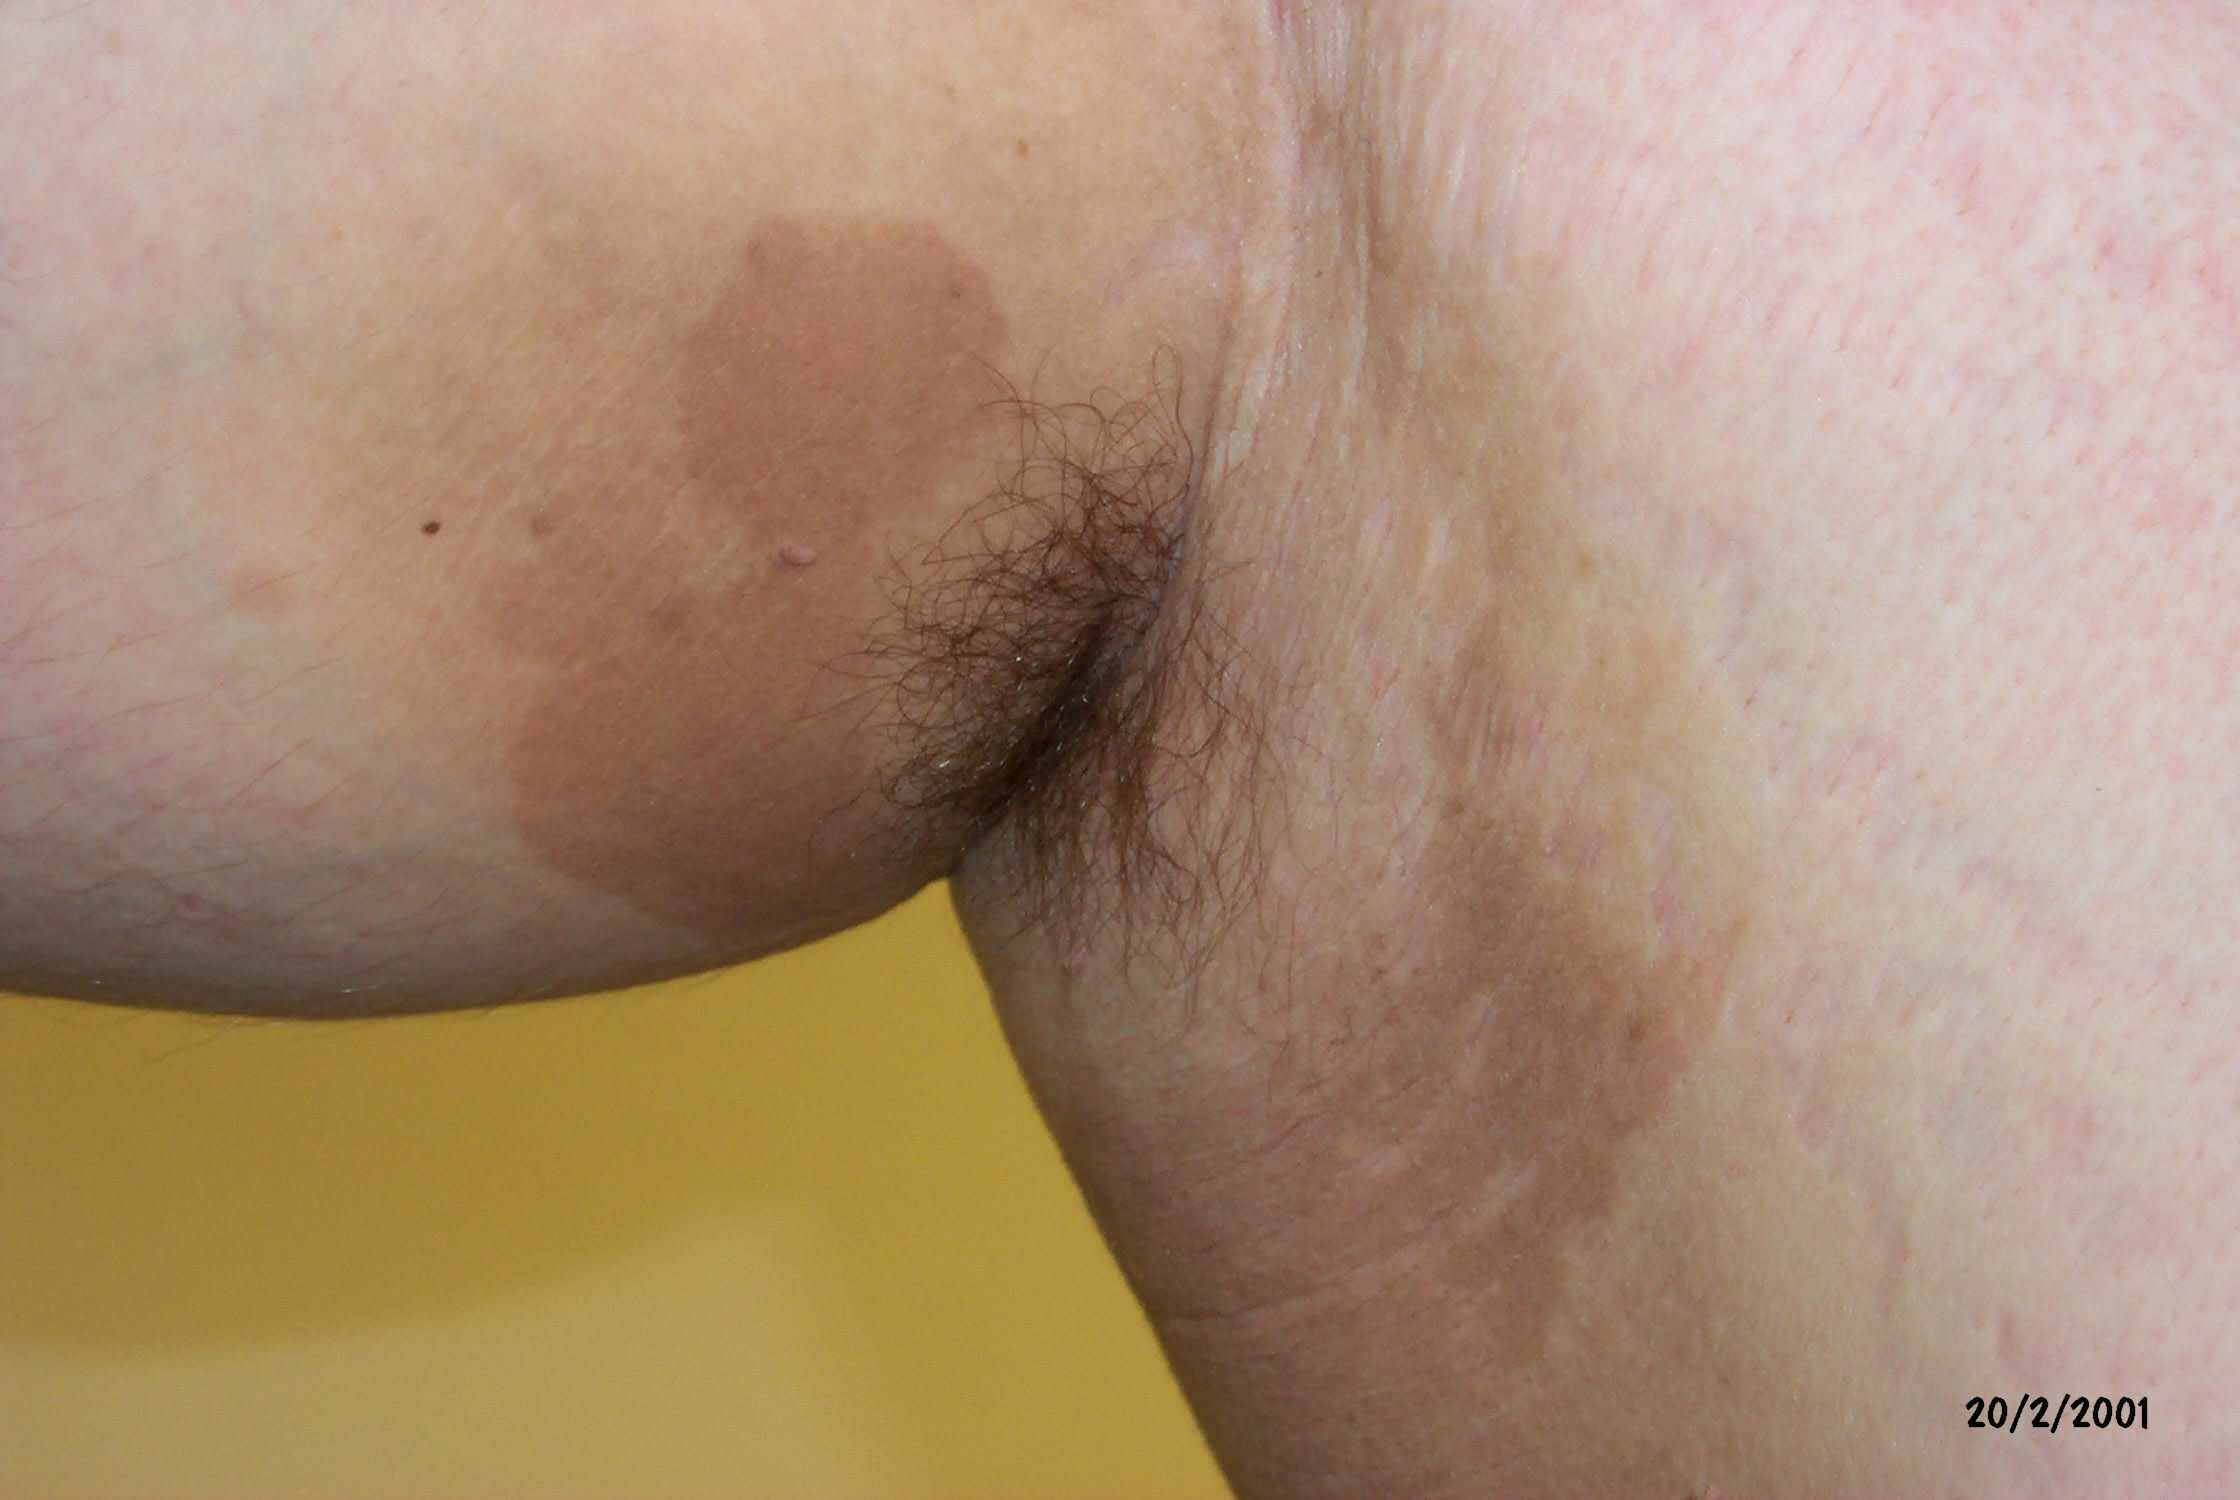 Common Rashes Found In The Armpits